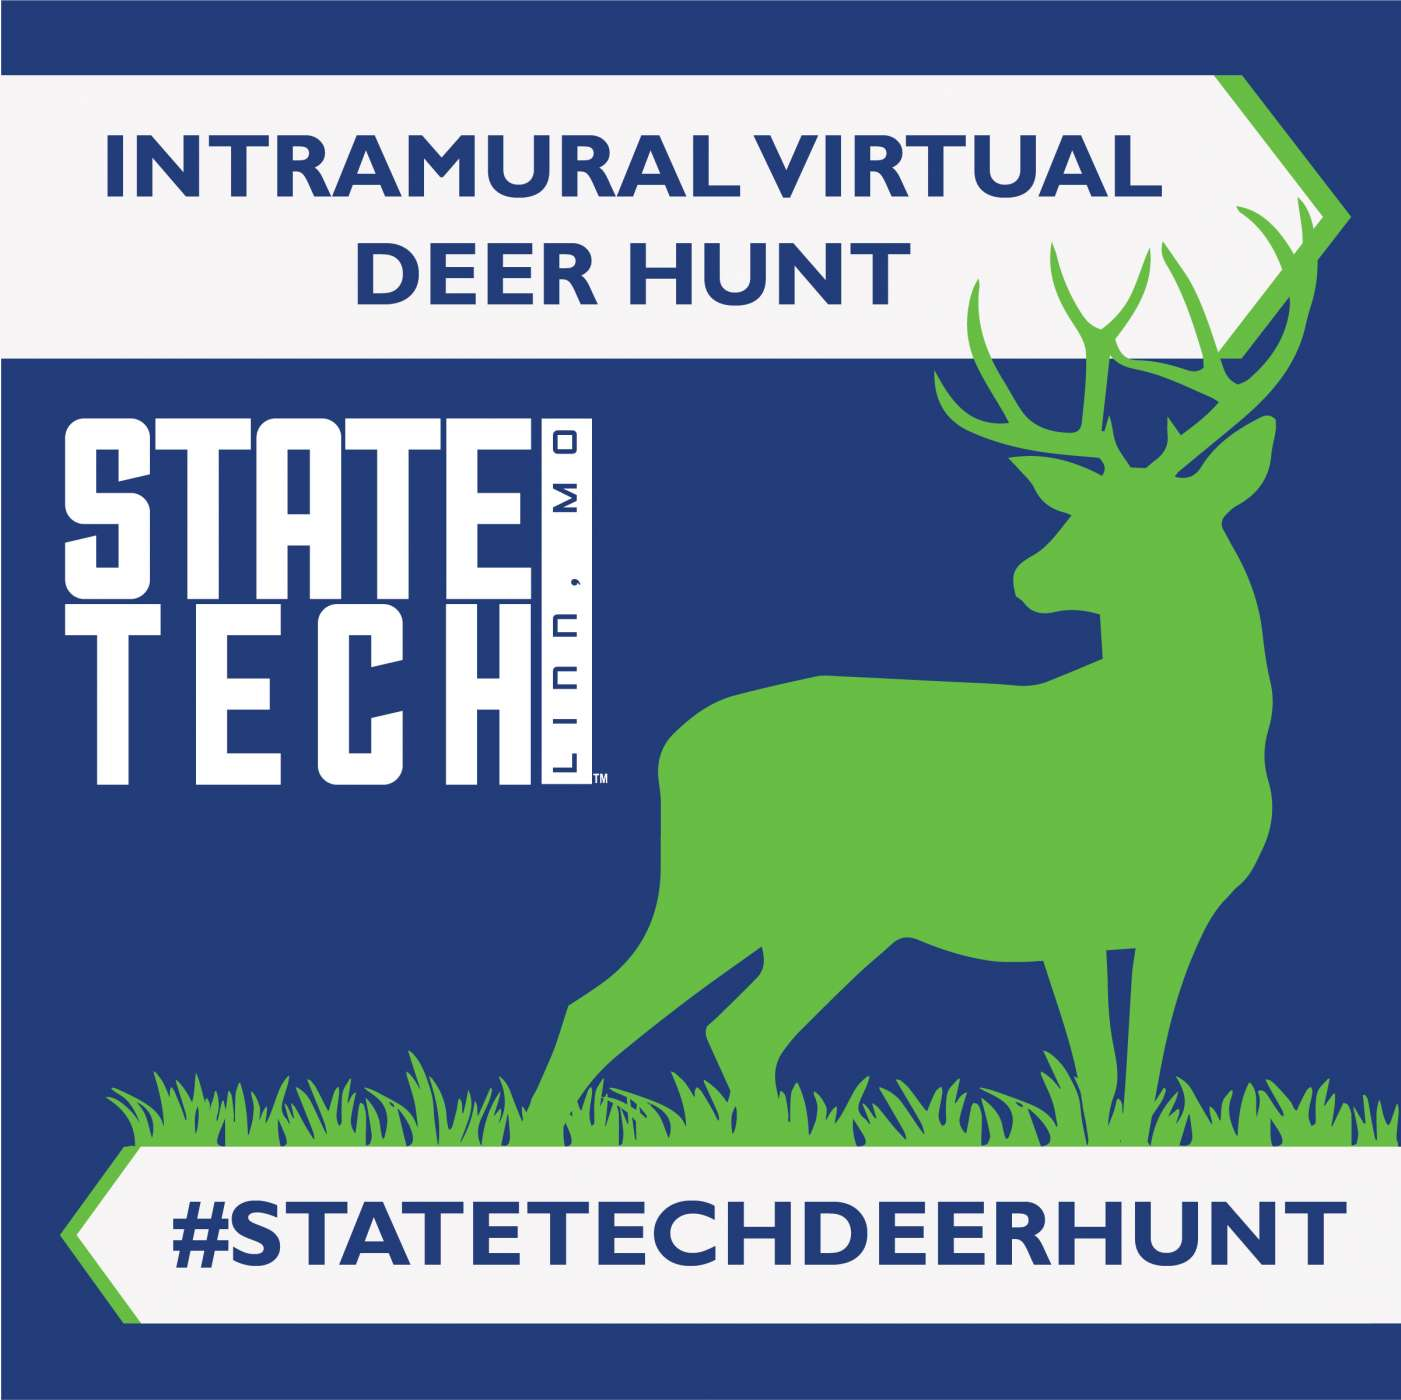 Intramural Deer Hunt